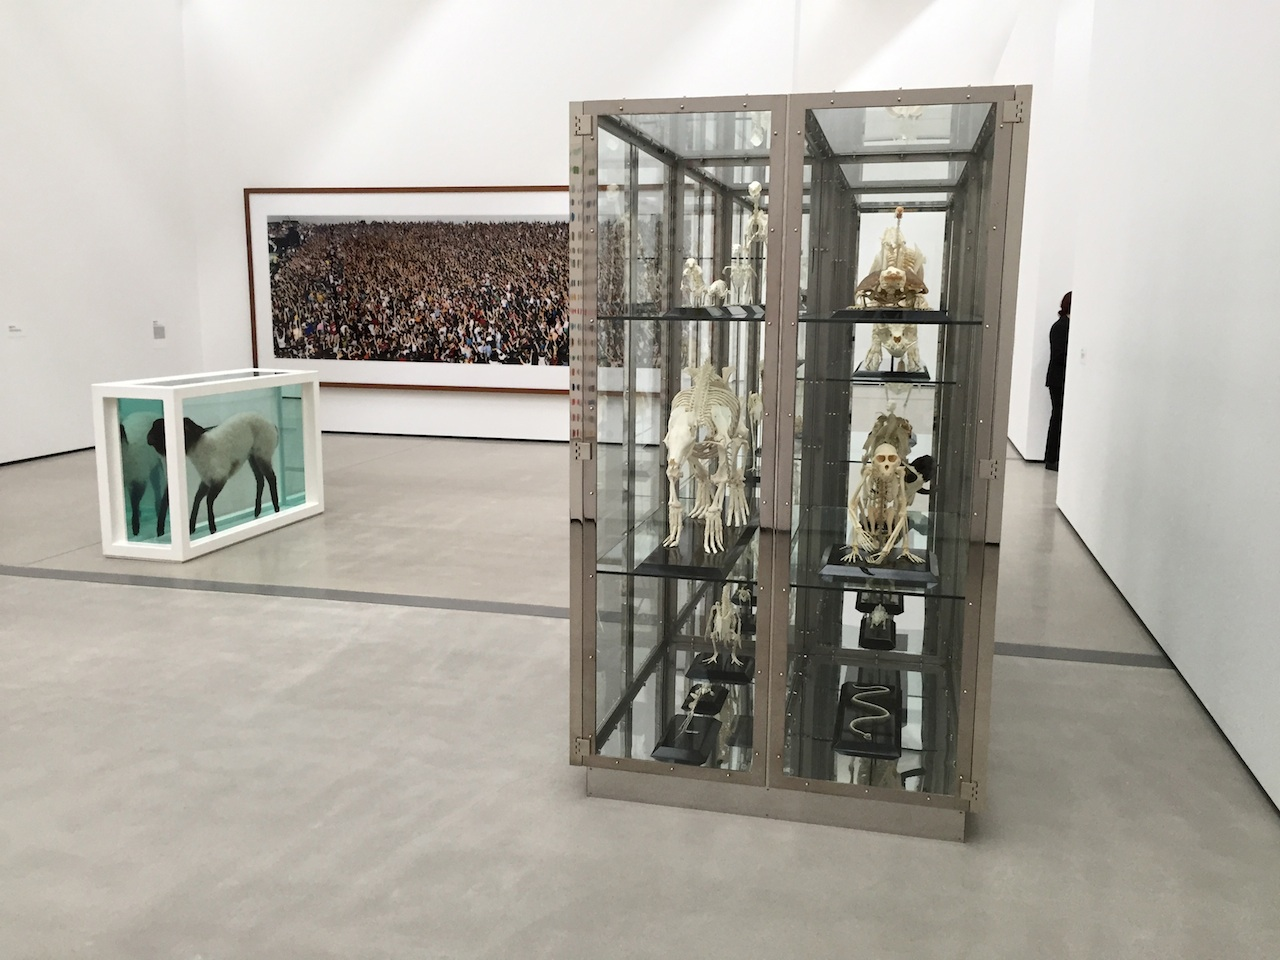 Damien Hirst and Andreas Gursky